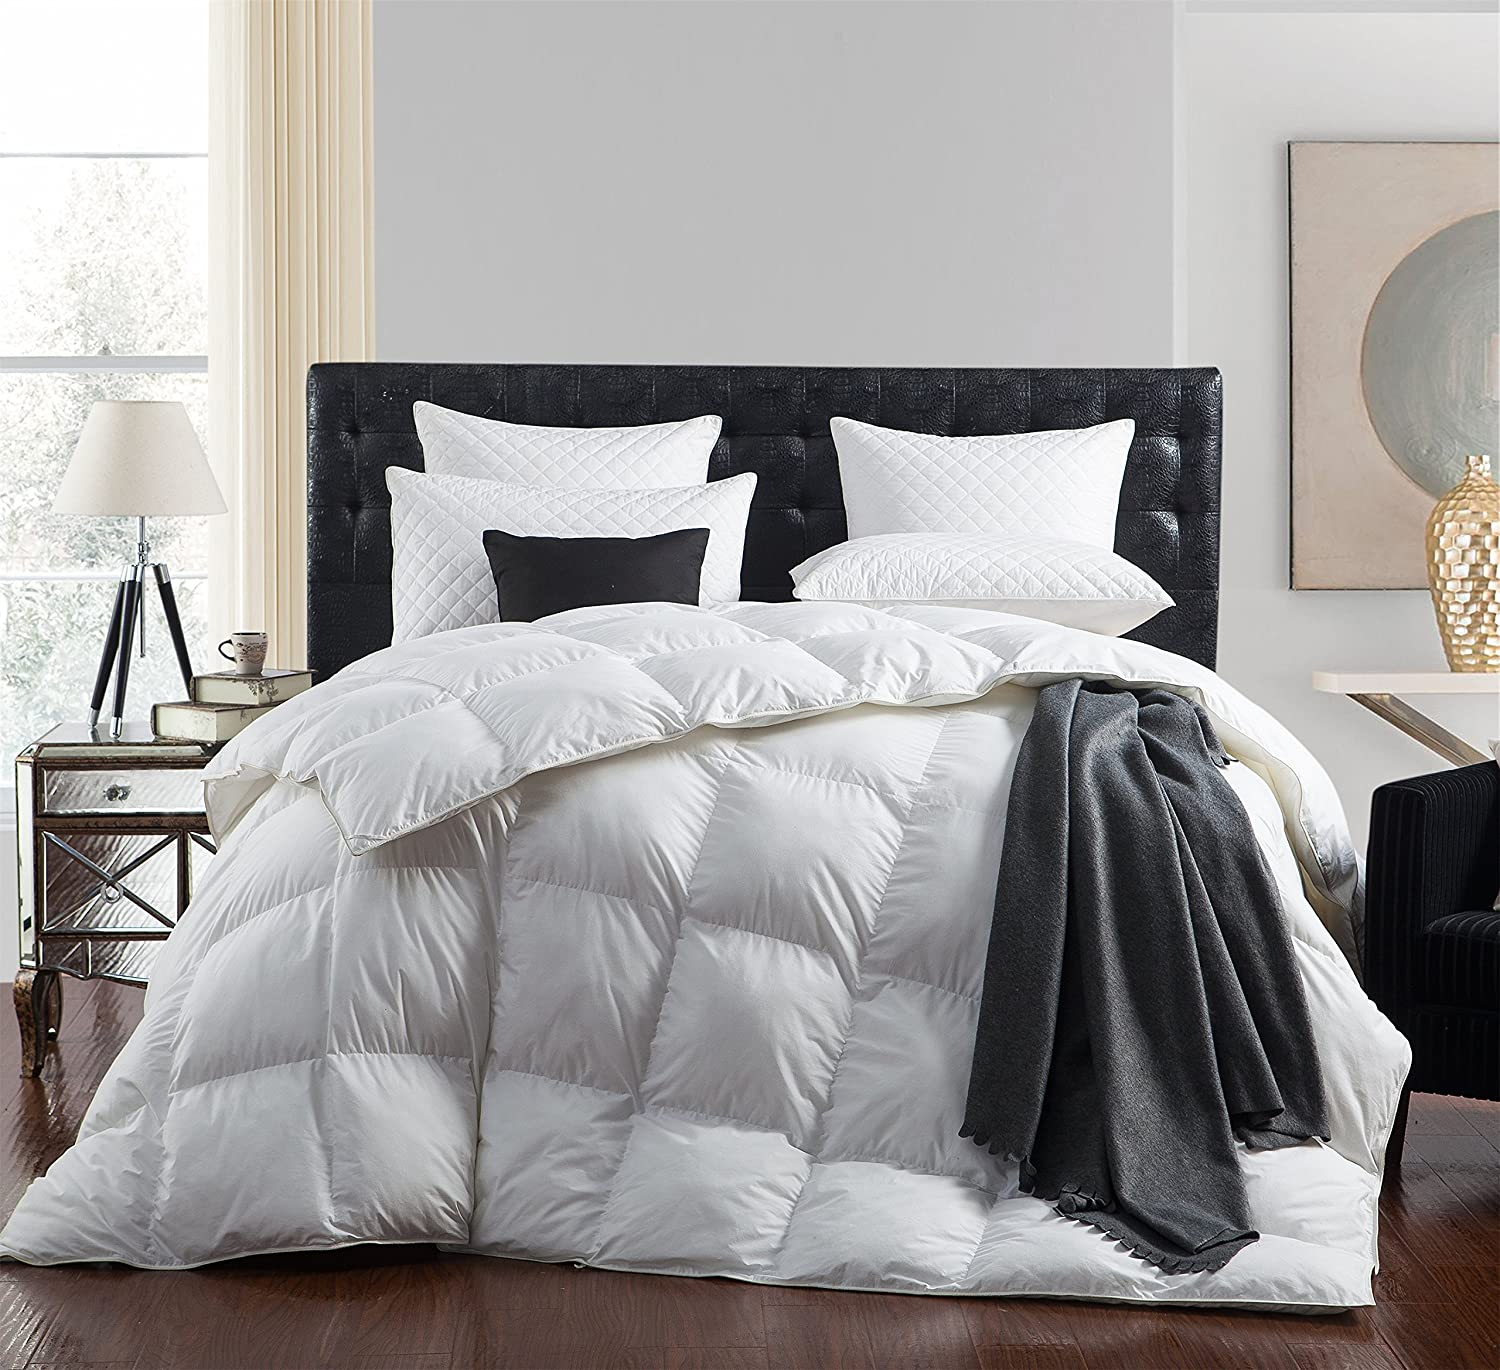 chance small htm of reasonable yo at danish collection high price goose with down produced comforters premium the white tinderbox comforter have u a s getting quality